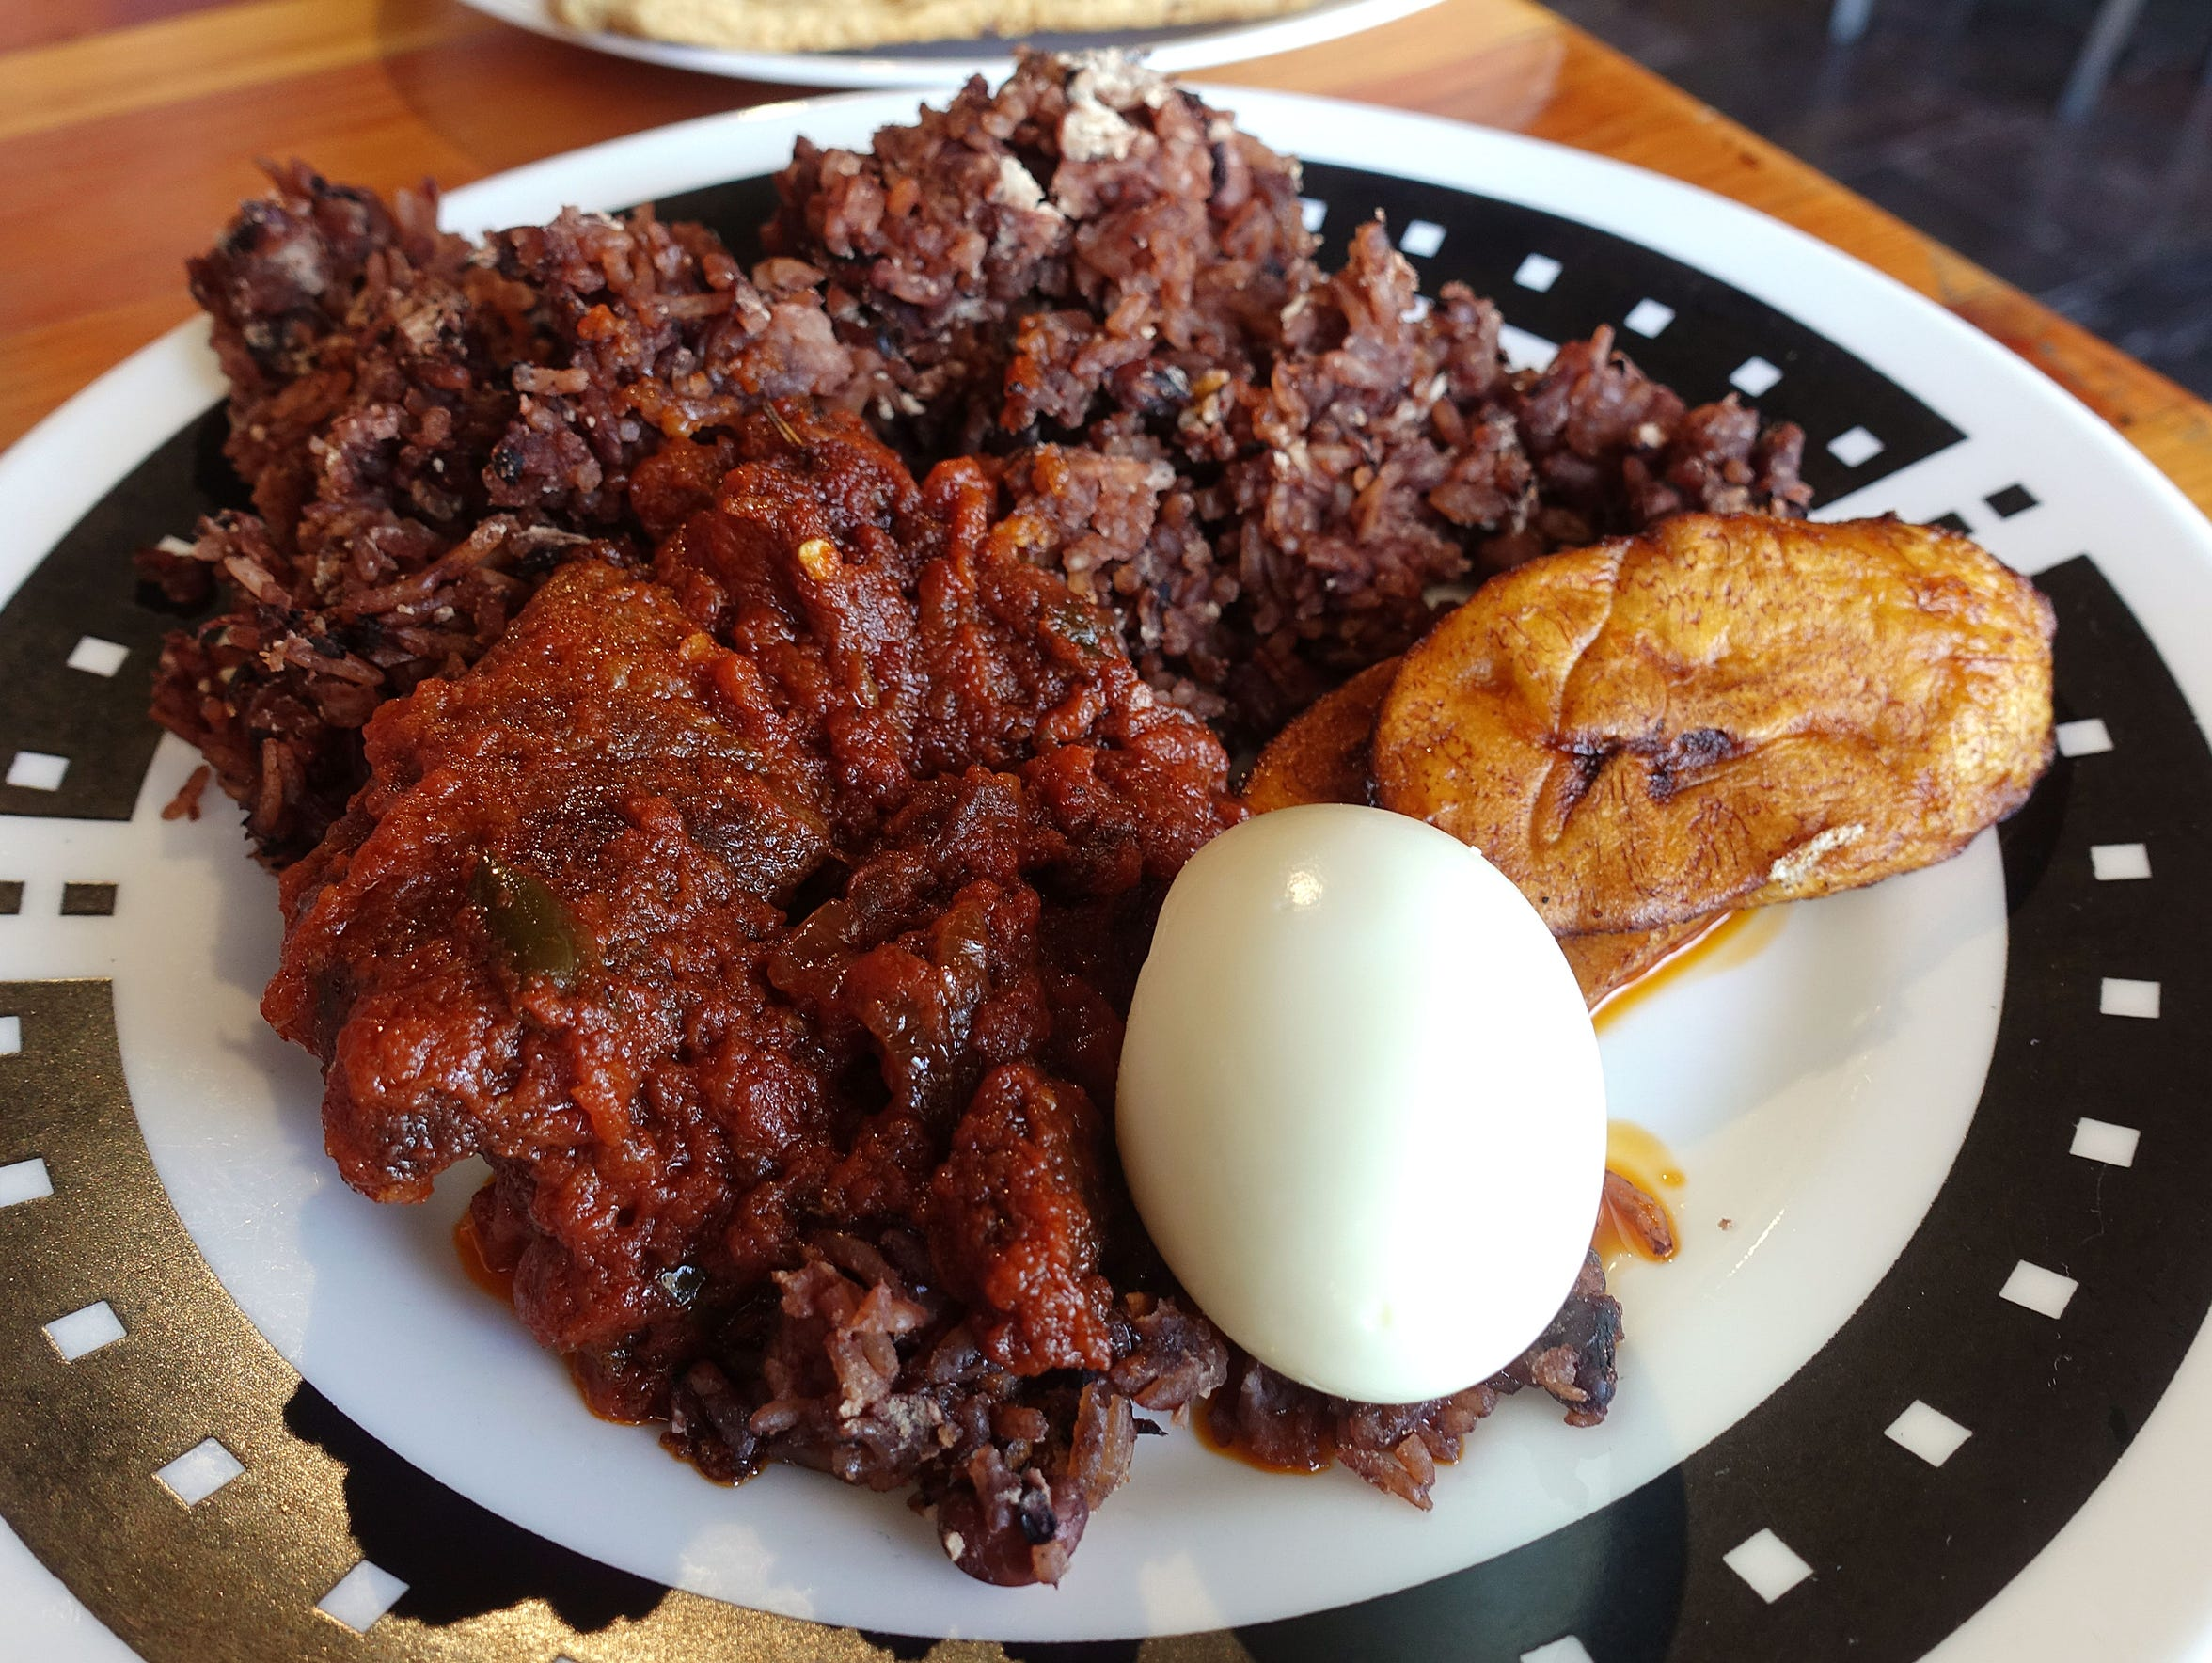 Waakye with goat stew, fried plantains and hard boiled egg at Jollof King in Tempe.